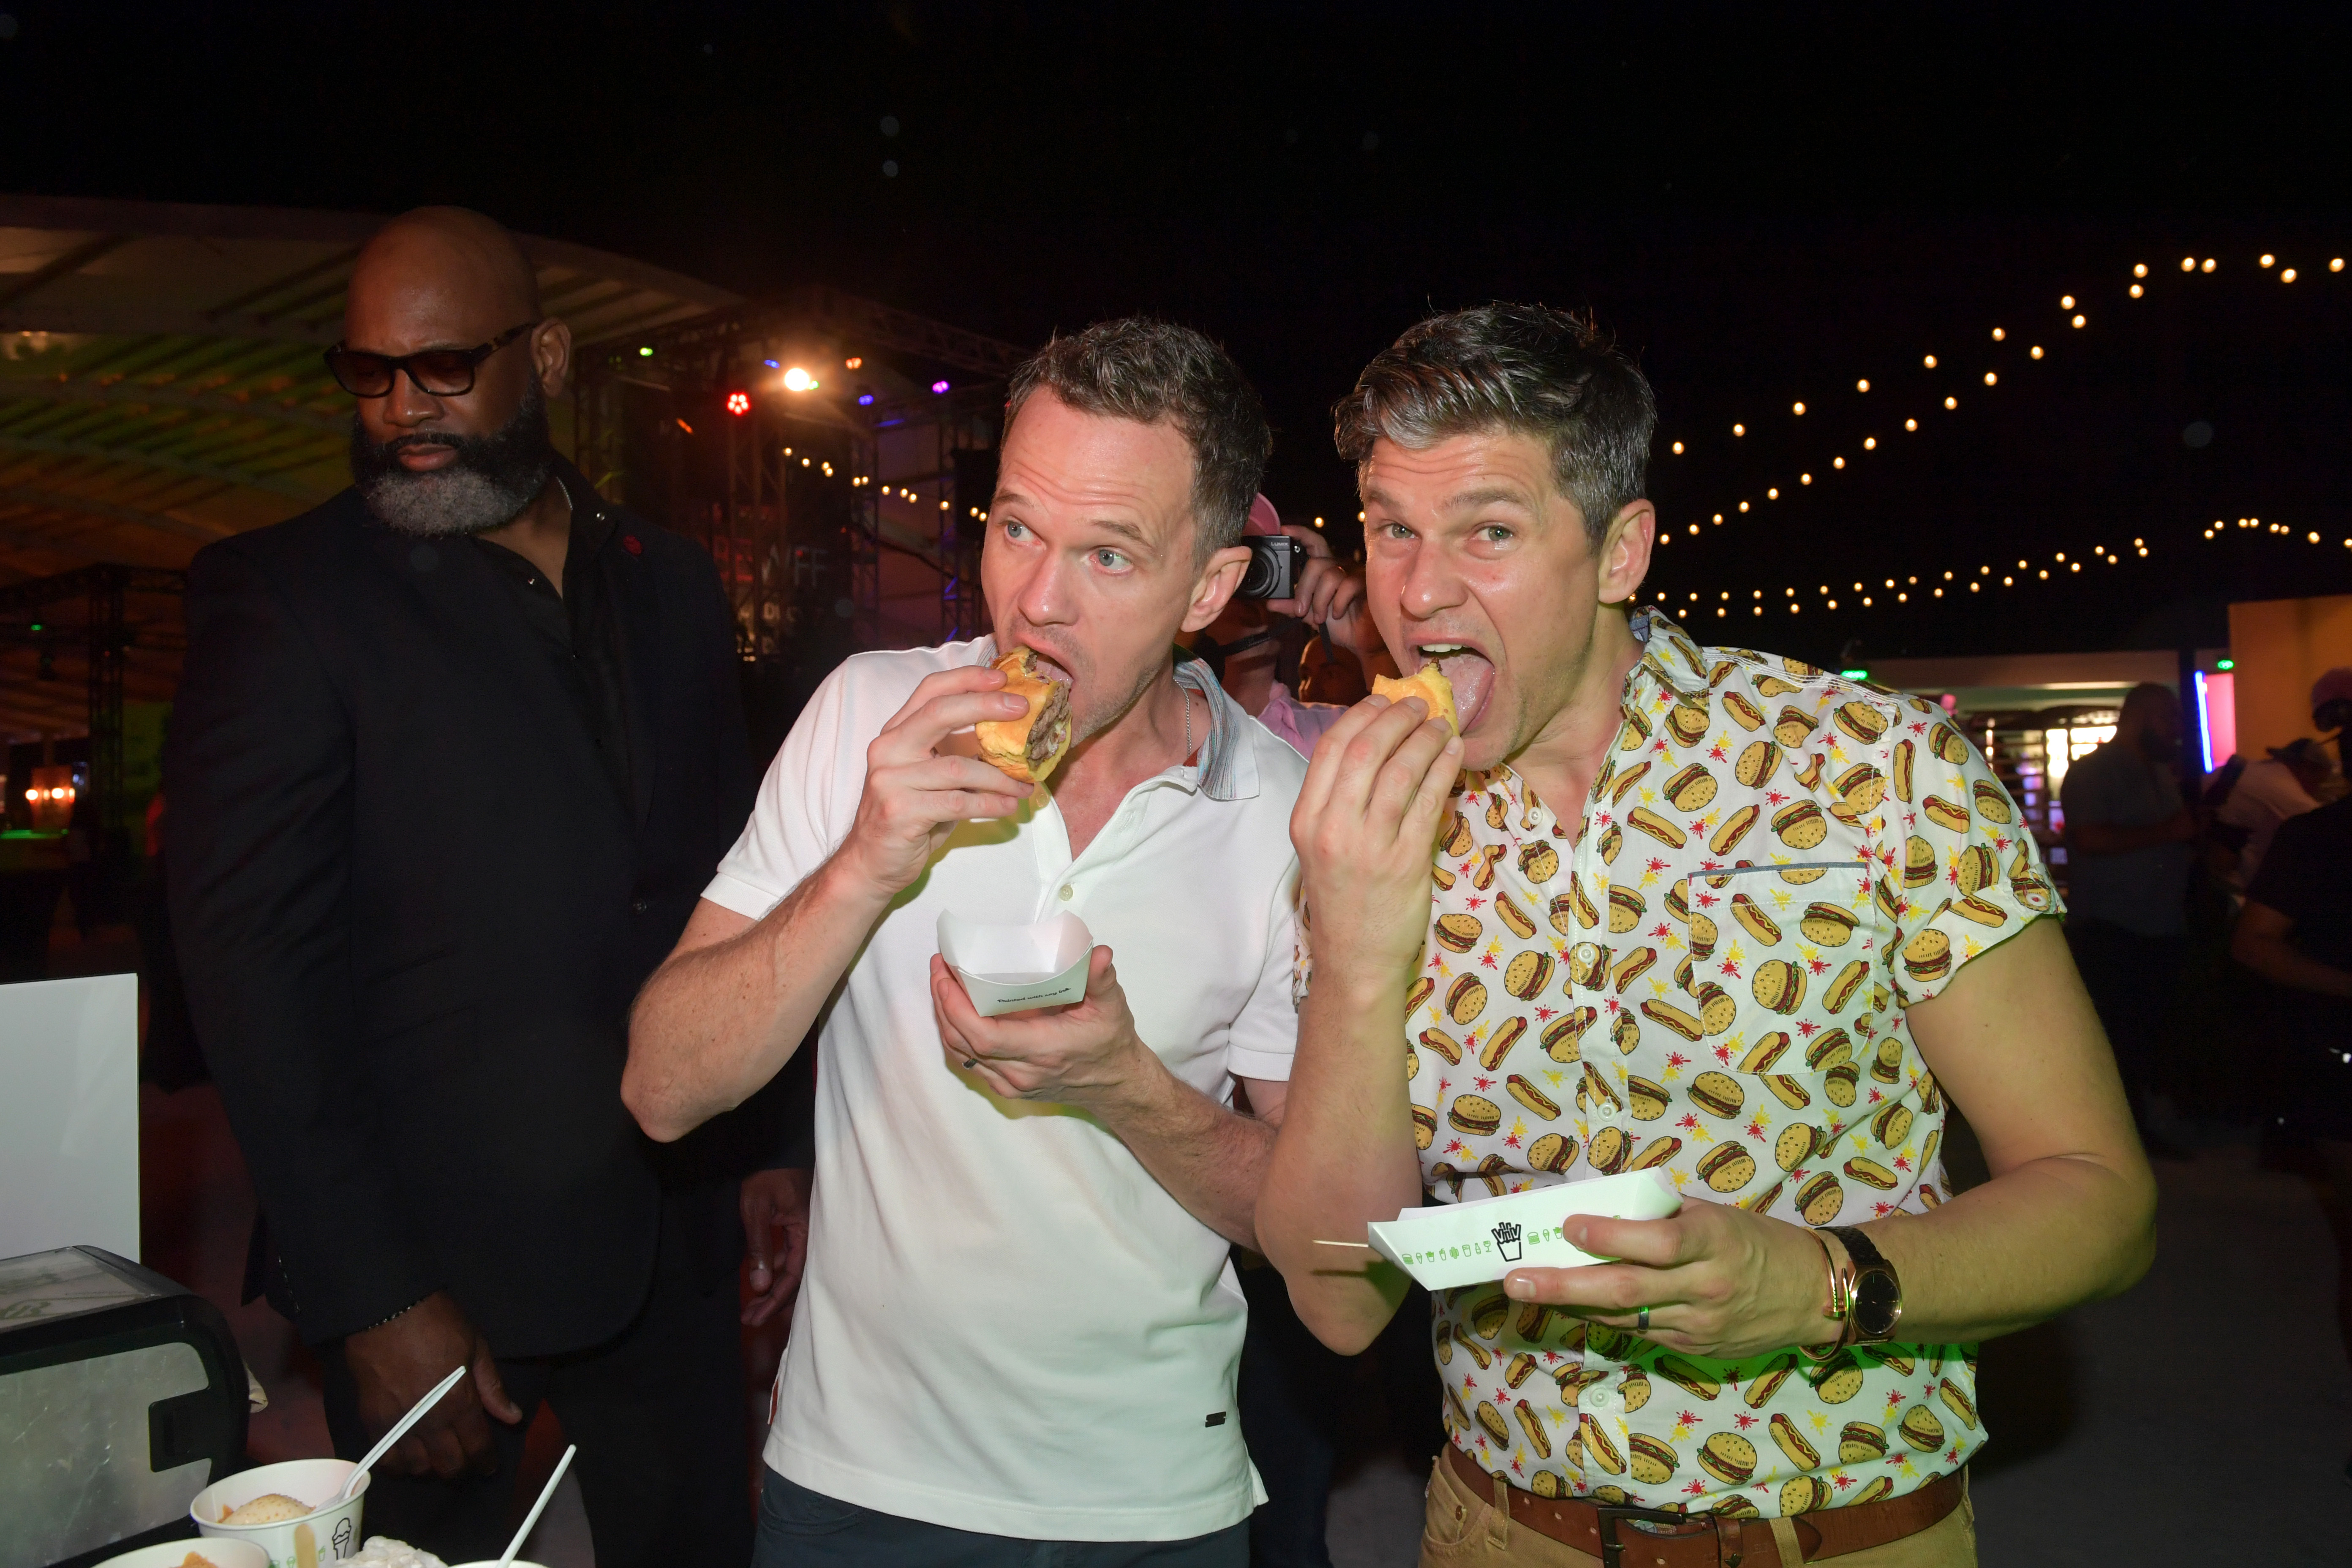 Neil Patrick Harris and David Burtka attend the South Beach Wine and Food Festival in Miami on Feb. 22, 2019.